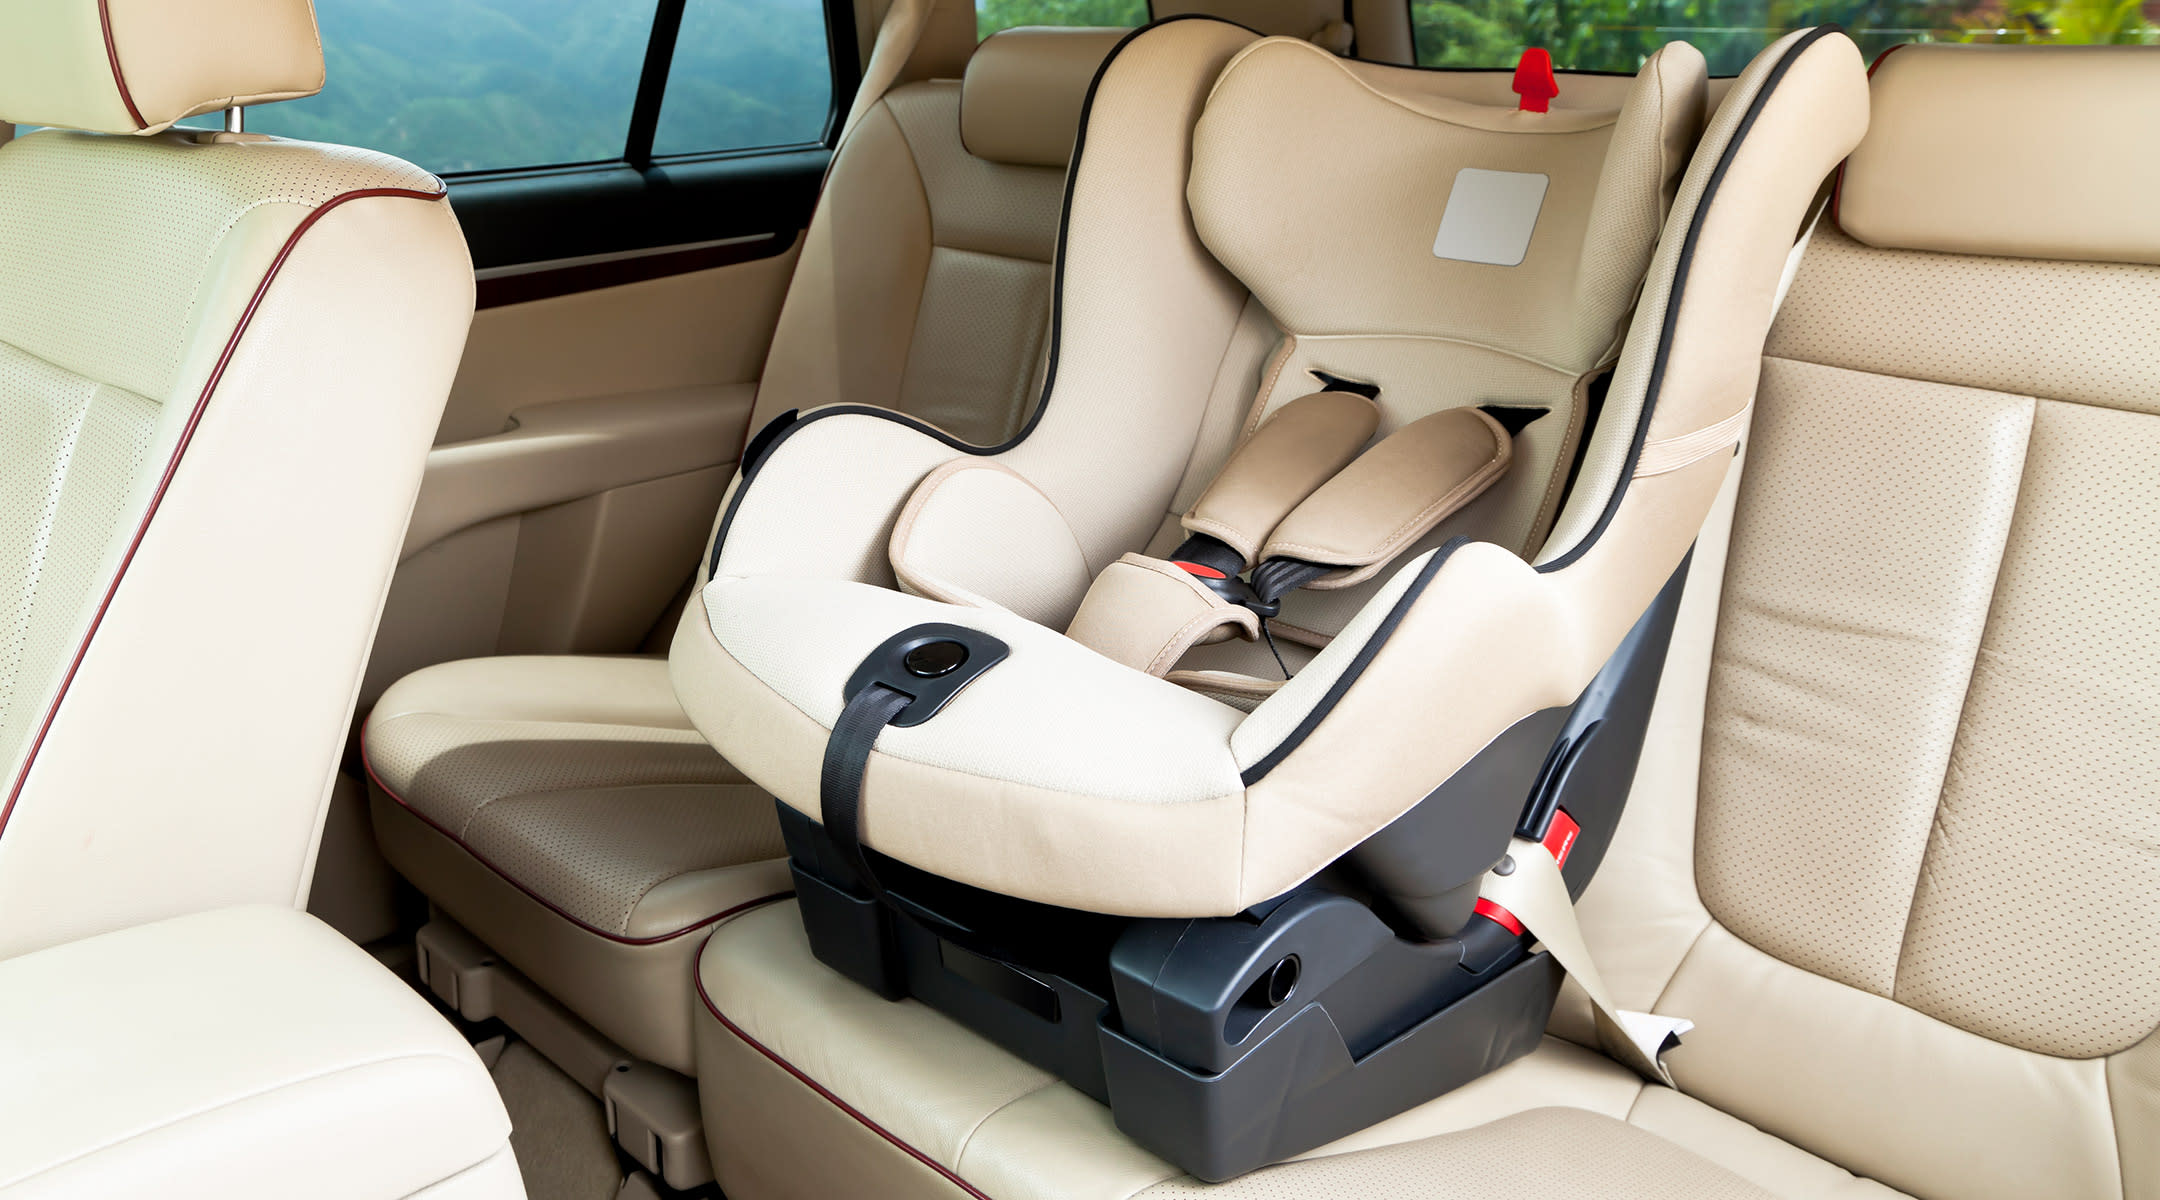 Car Seat Expiration How Long Are Seats Good For